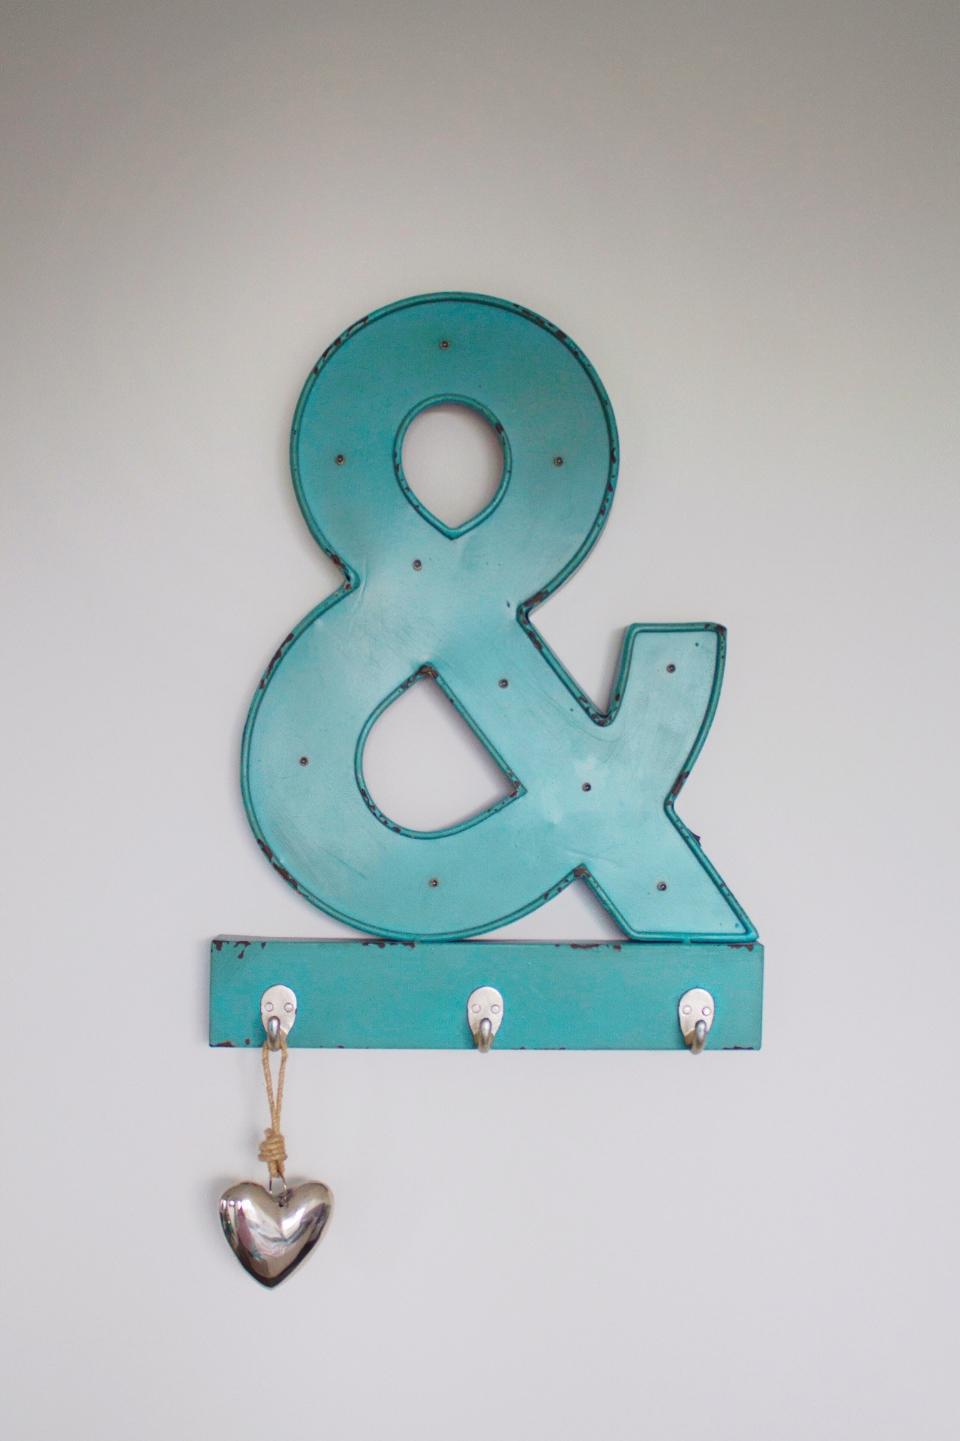 Free stock photo of ampersand hanging